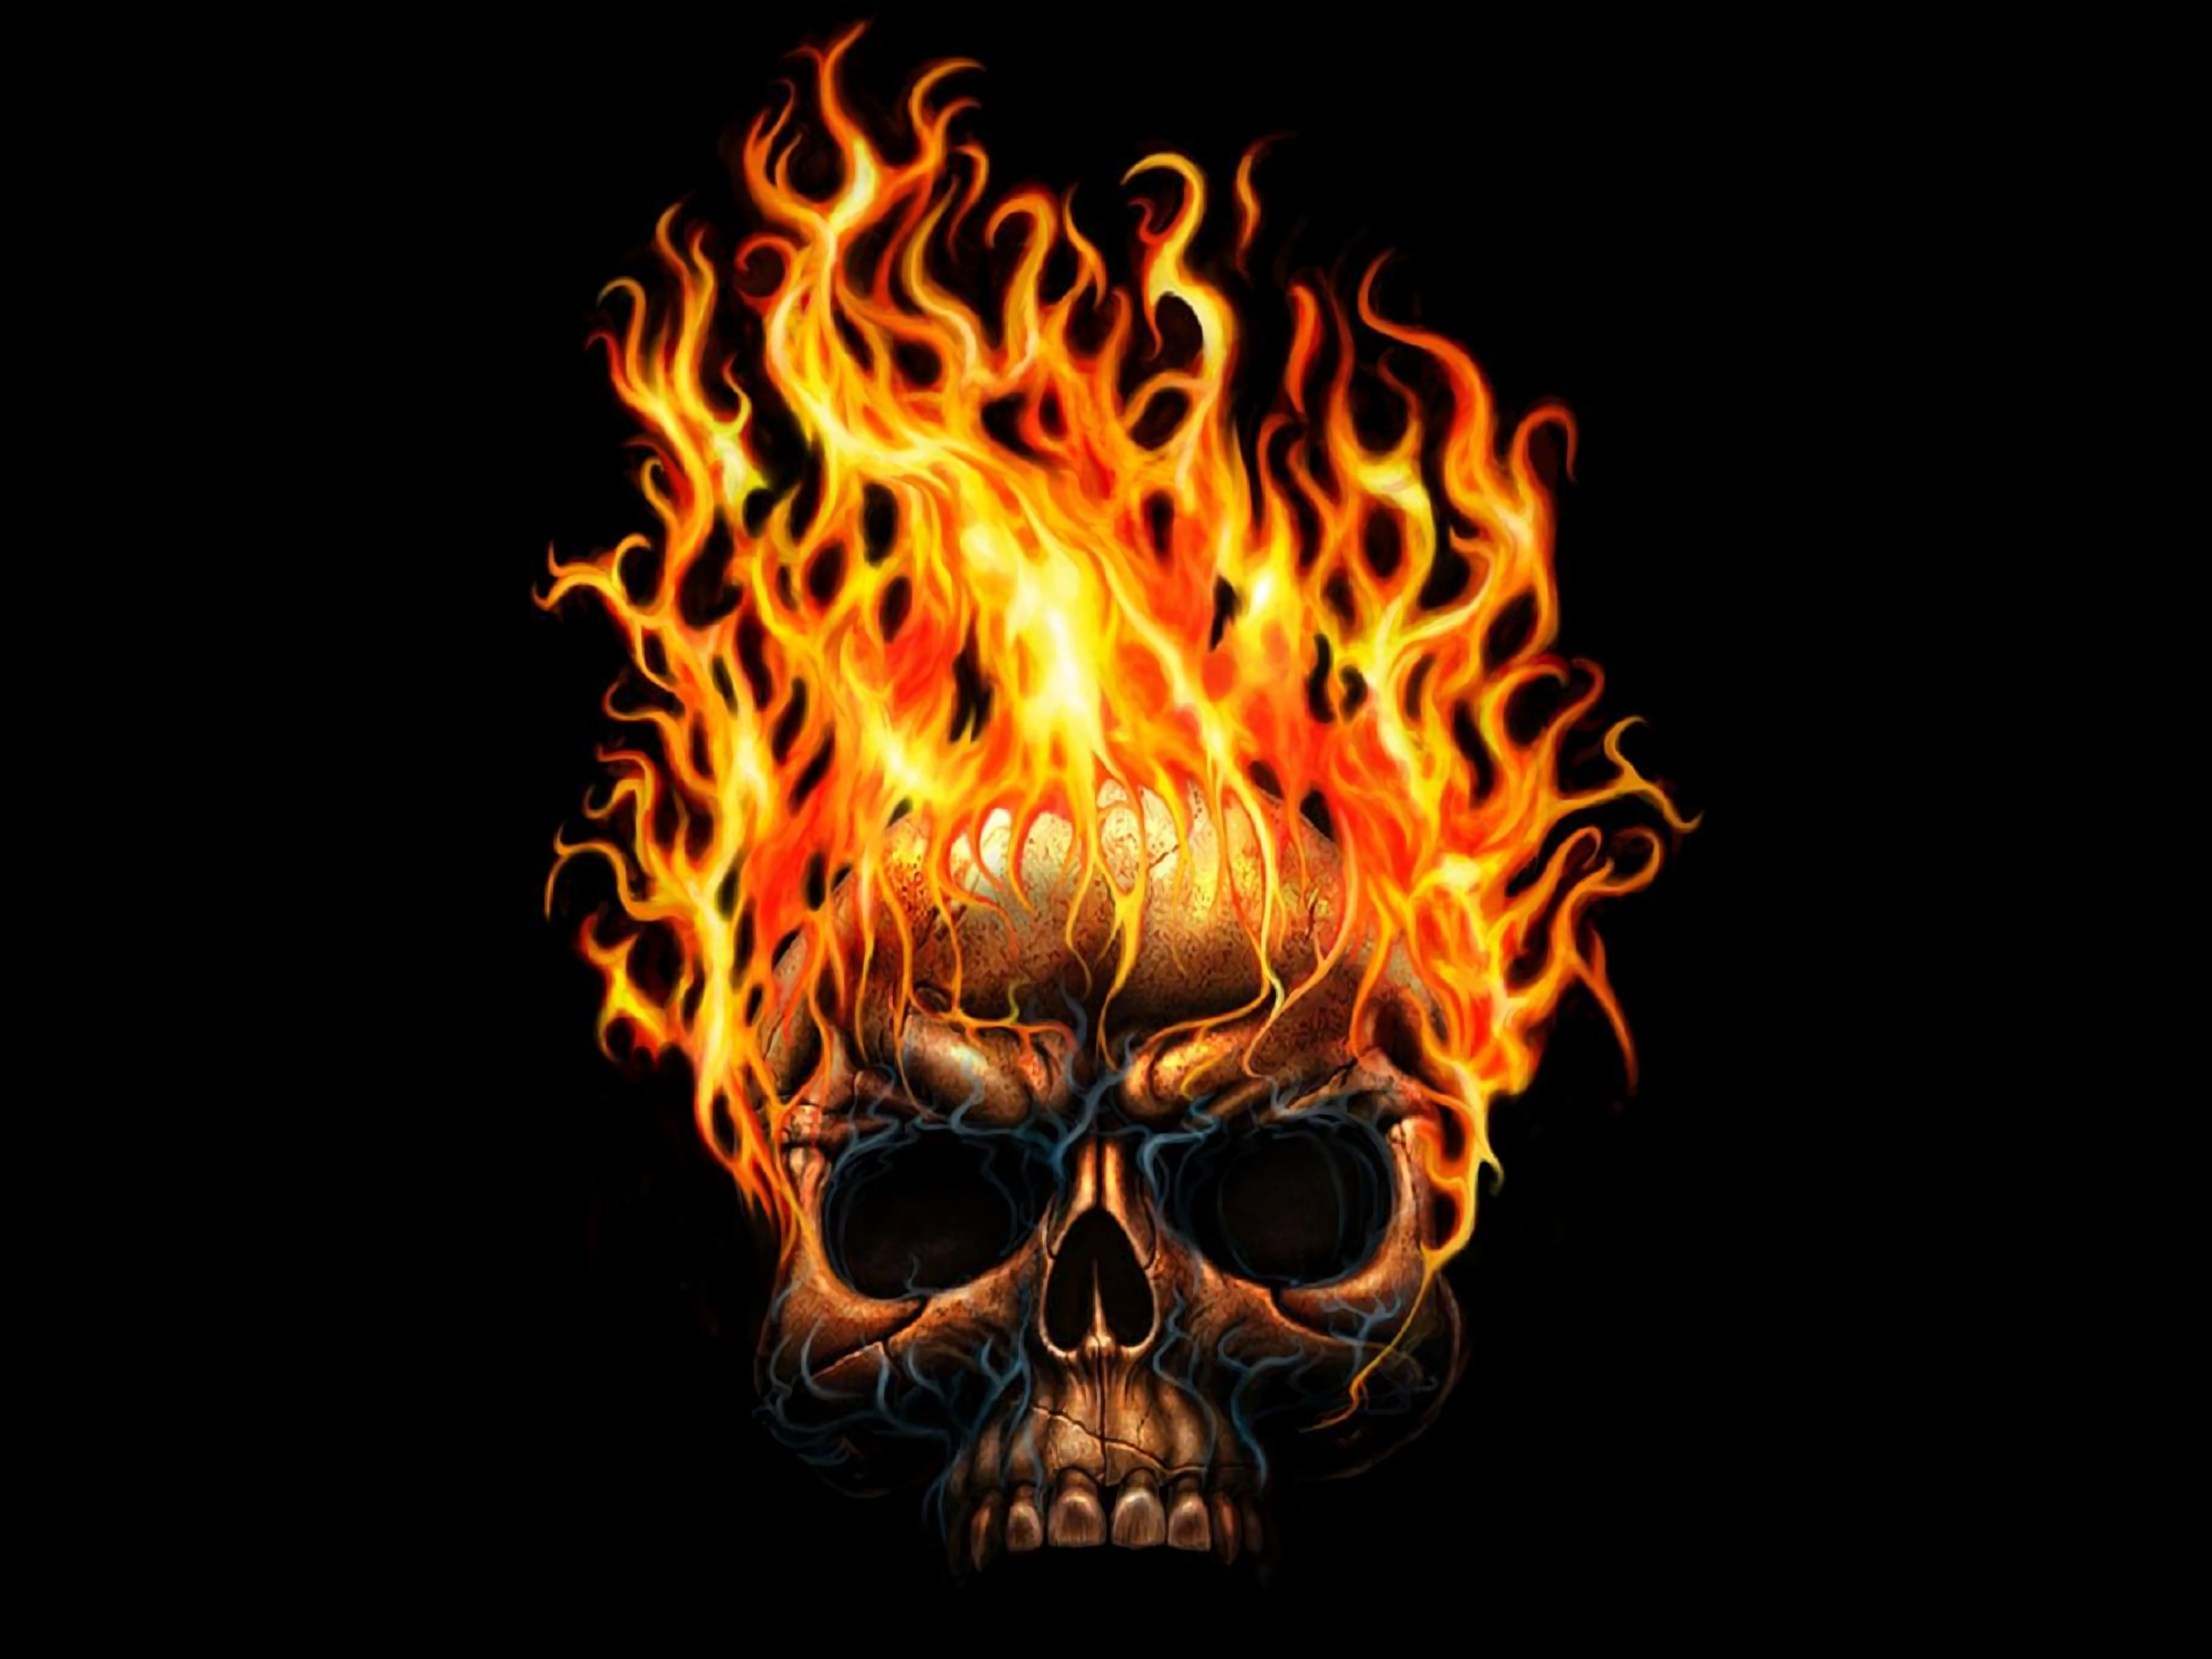 Hd wallpaper background image id38806 3200x2400 dark skull